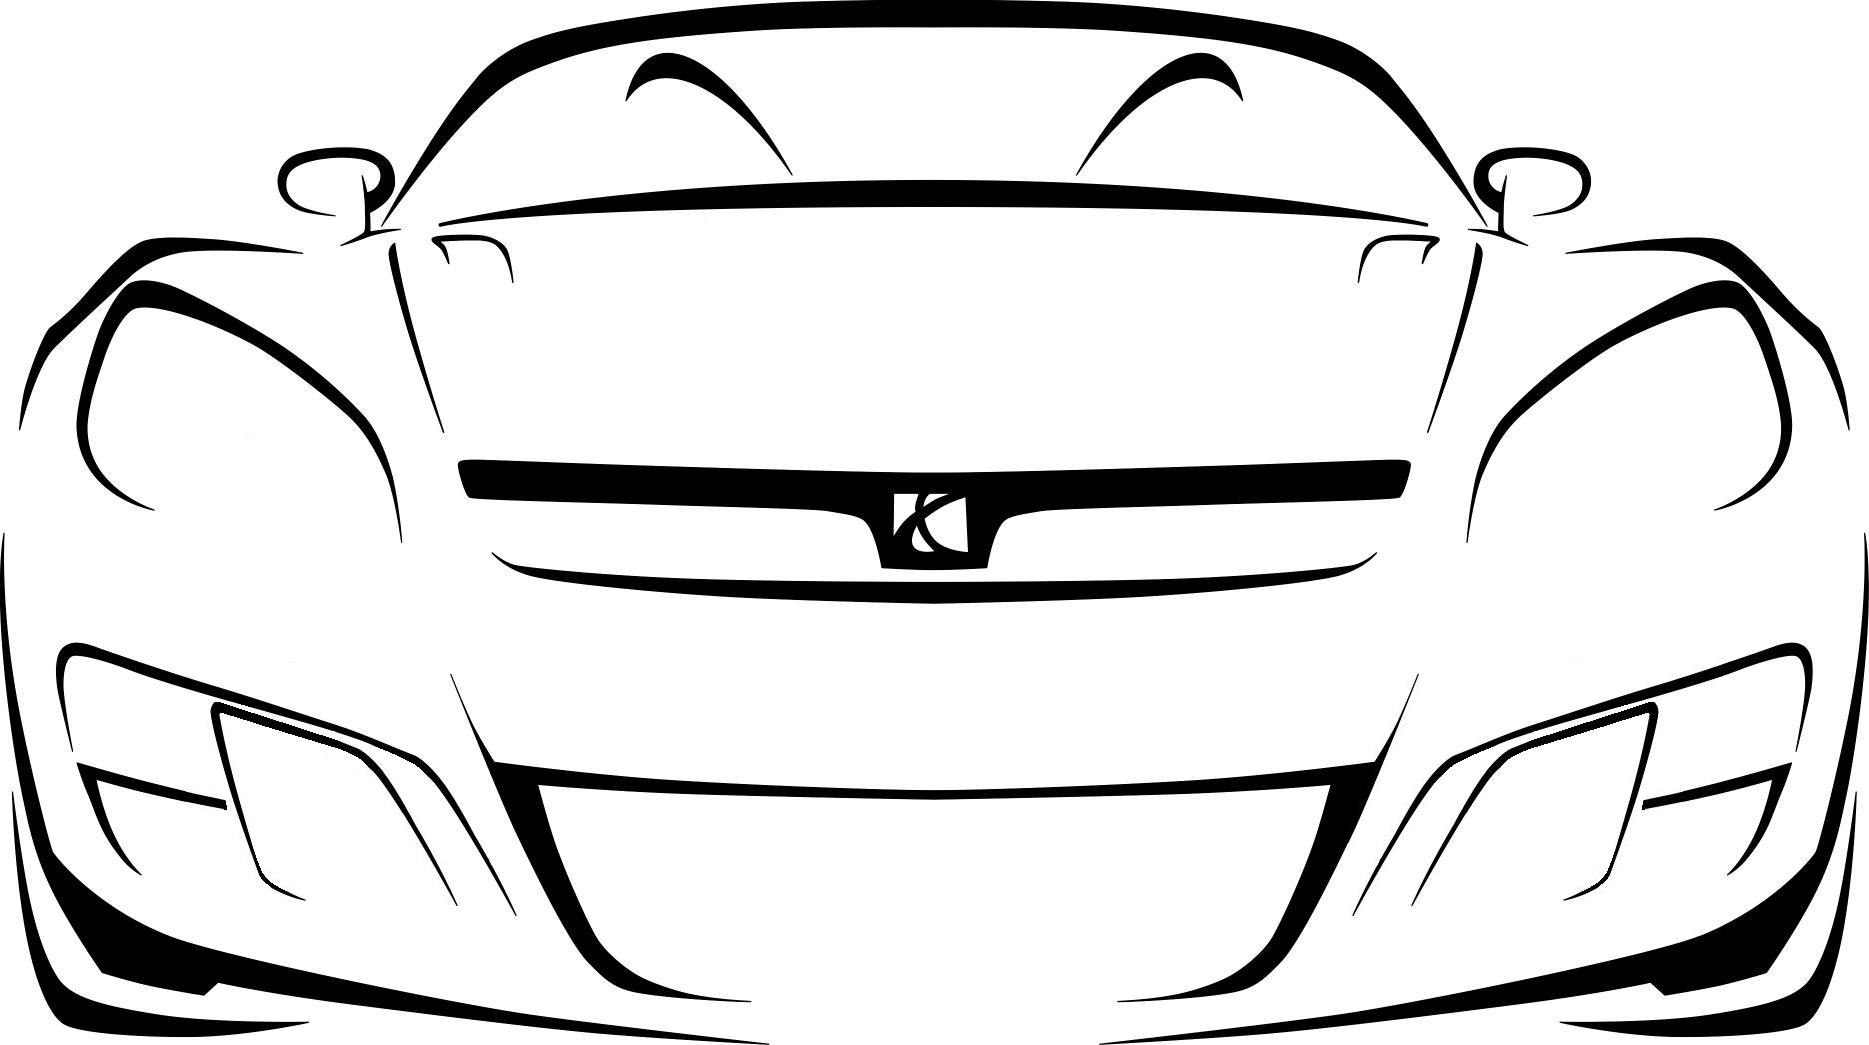 Racing car outline drawing 15